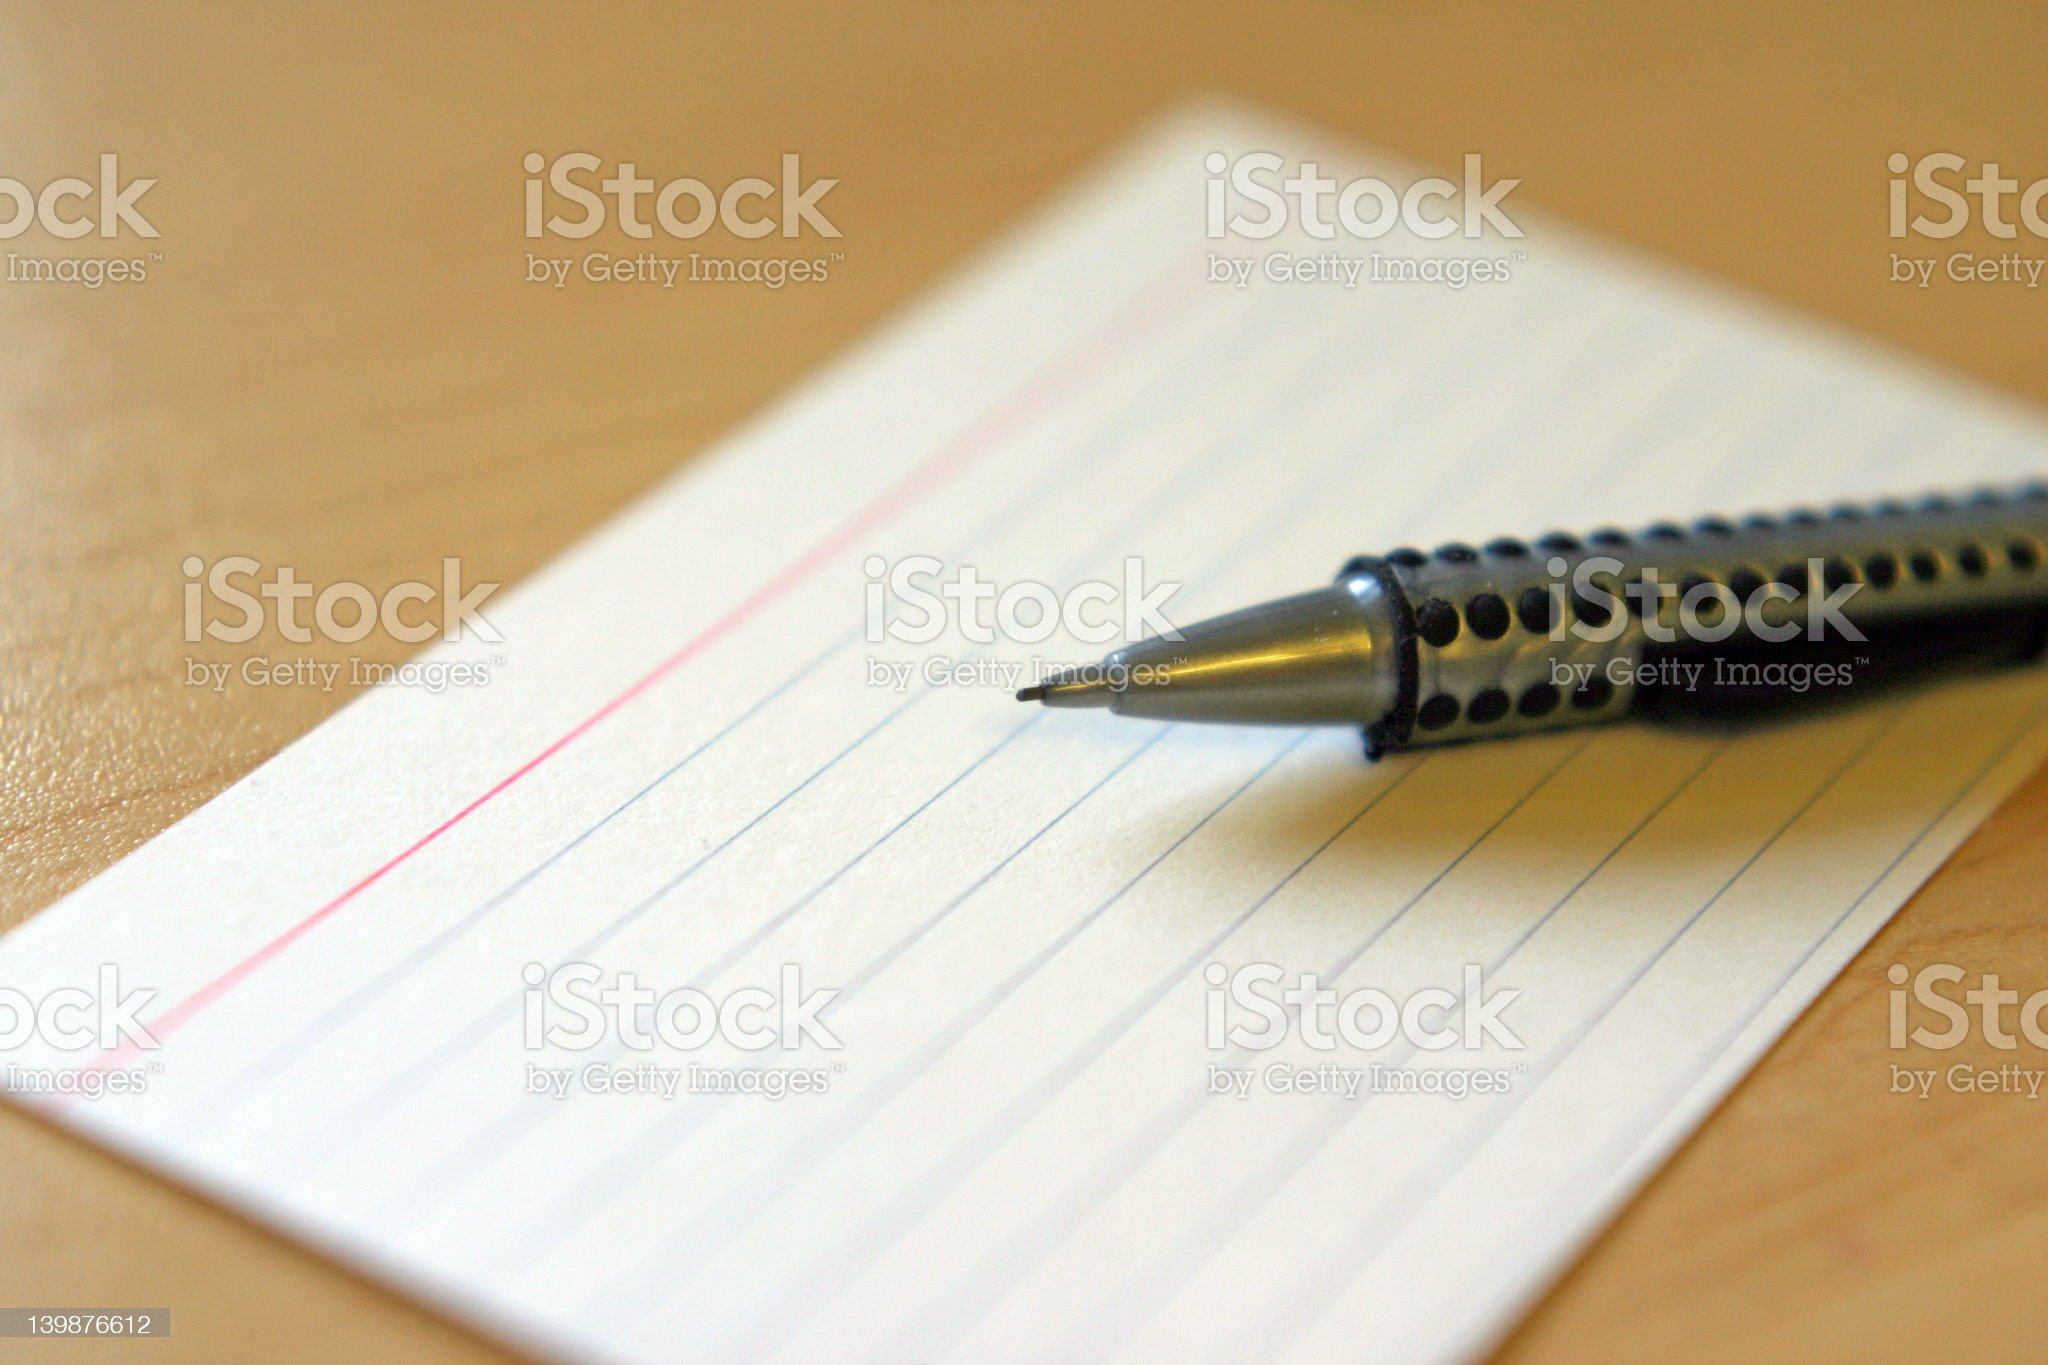 Pencil and Index Card royalty-free stock photo